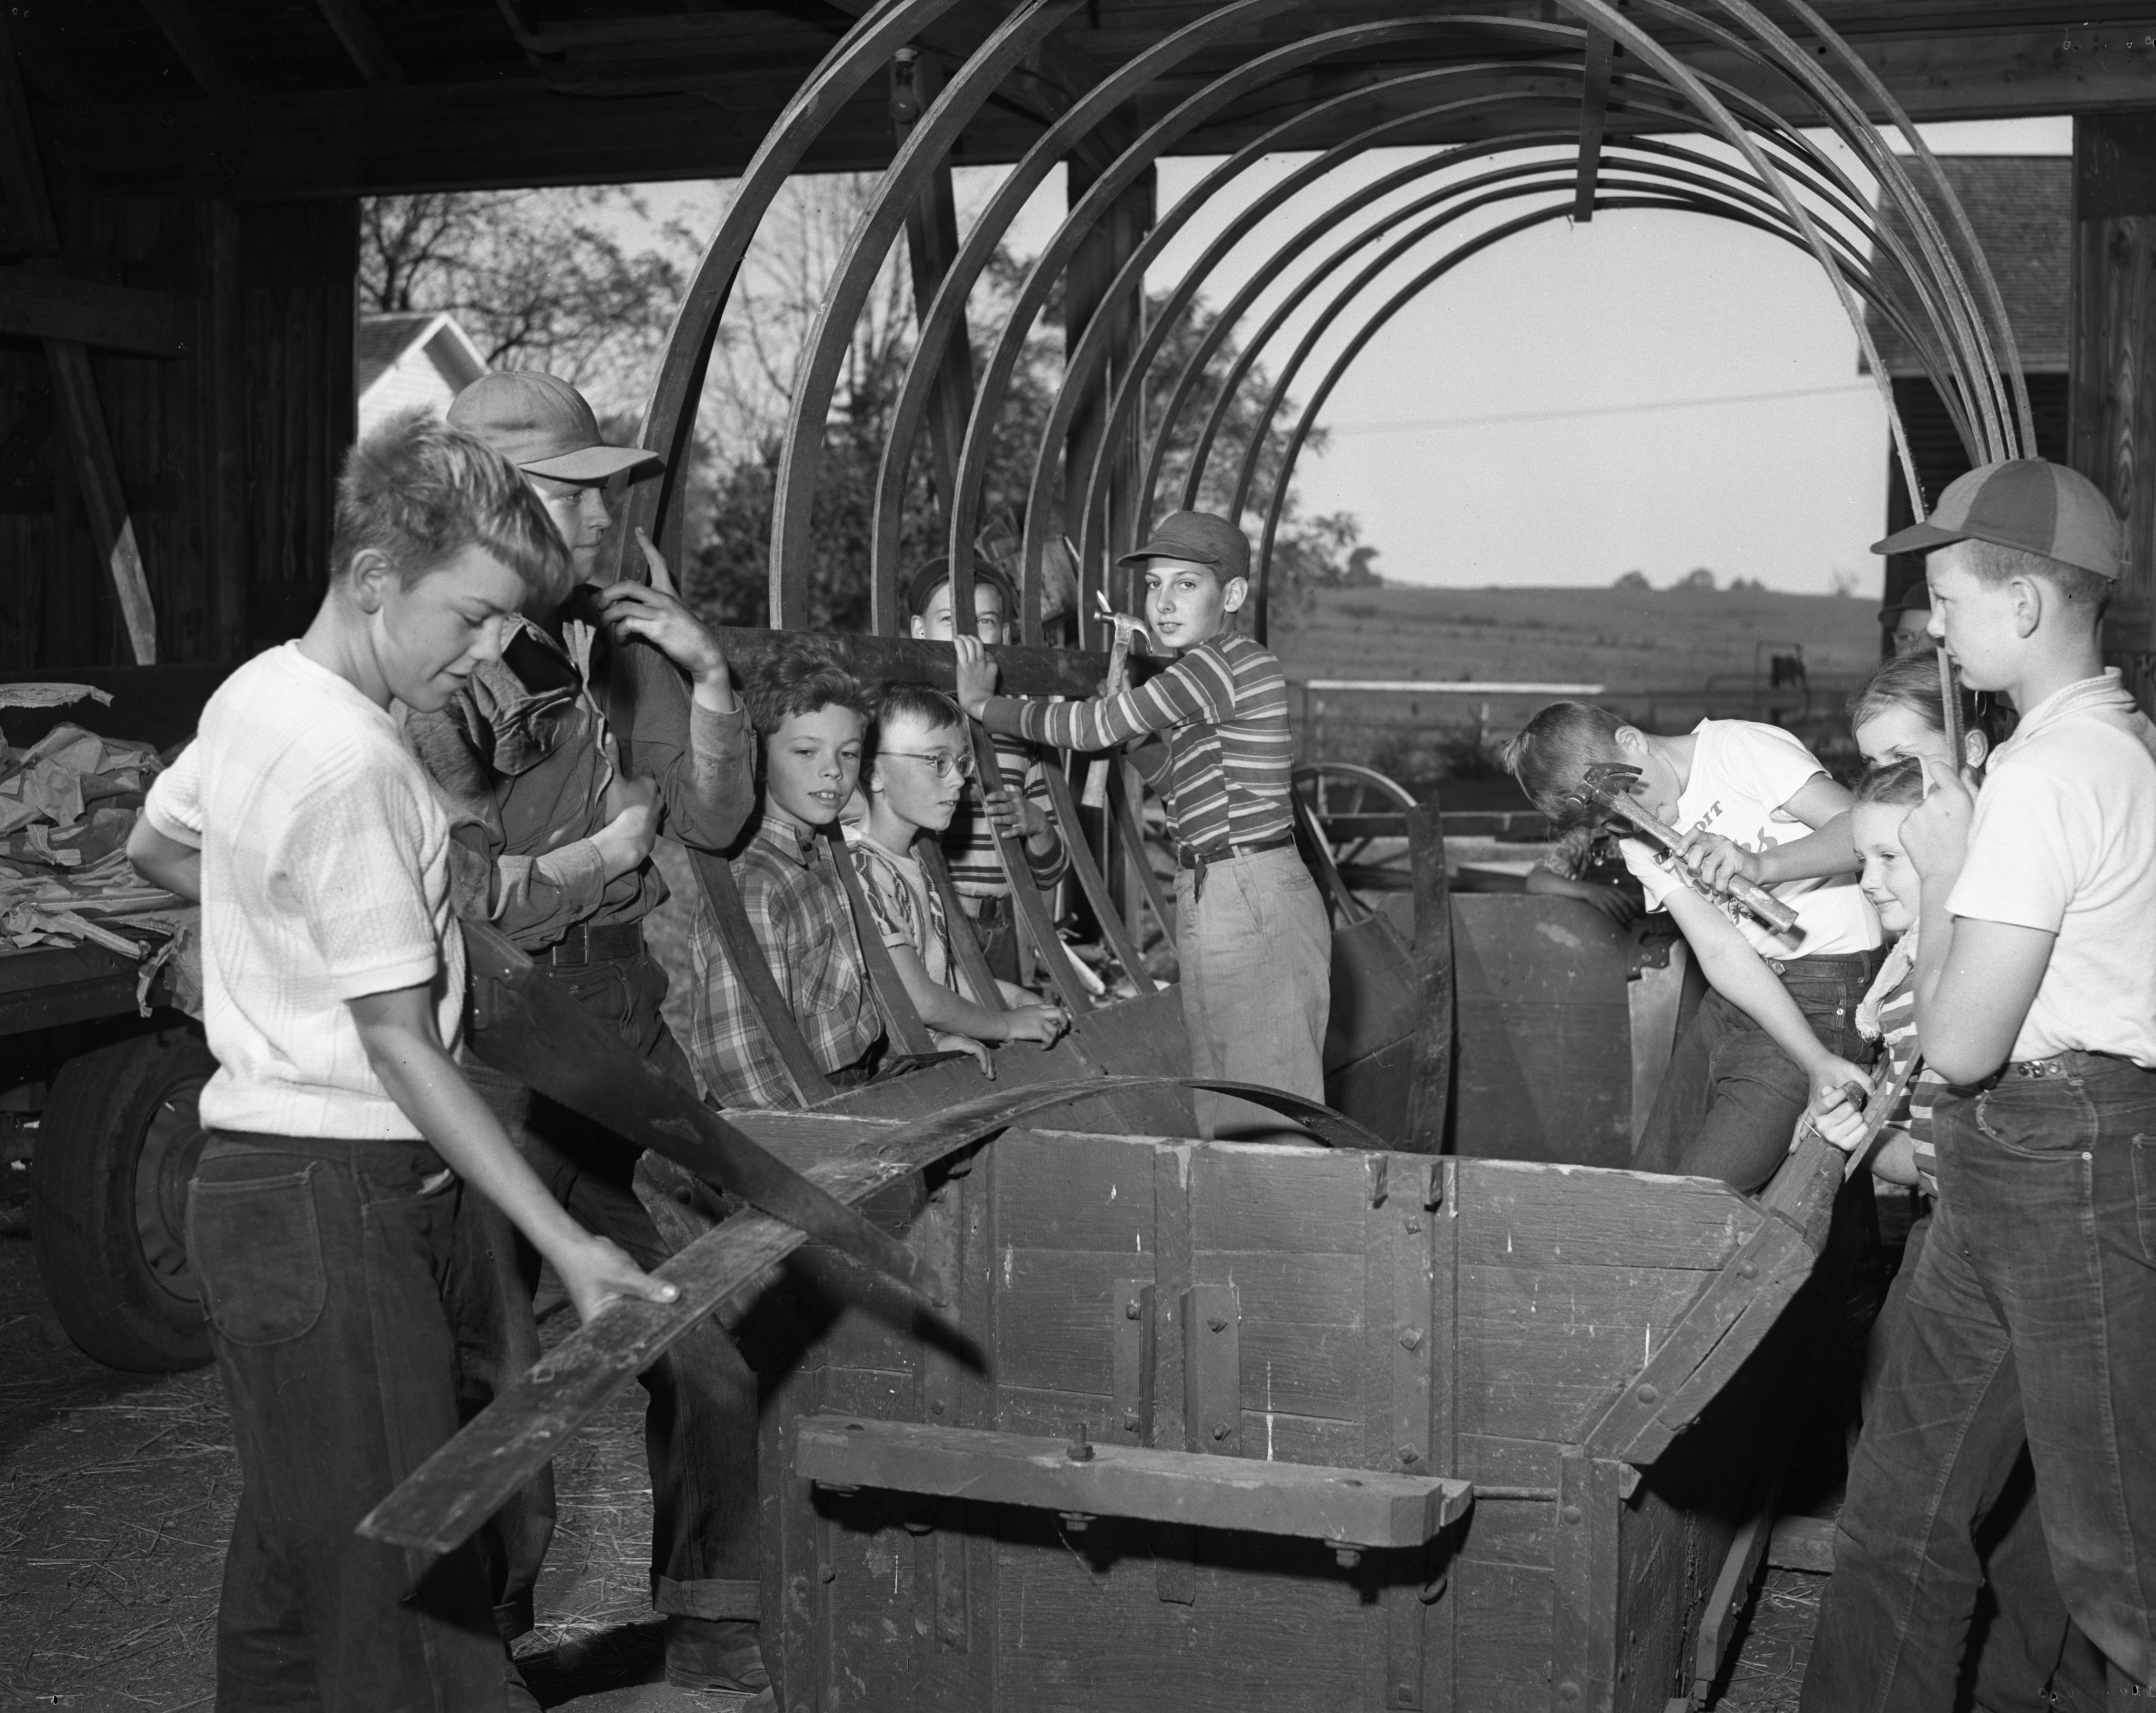 Jewett Stone School kids work on prairie schooner for parade, September 1950 image